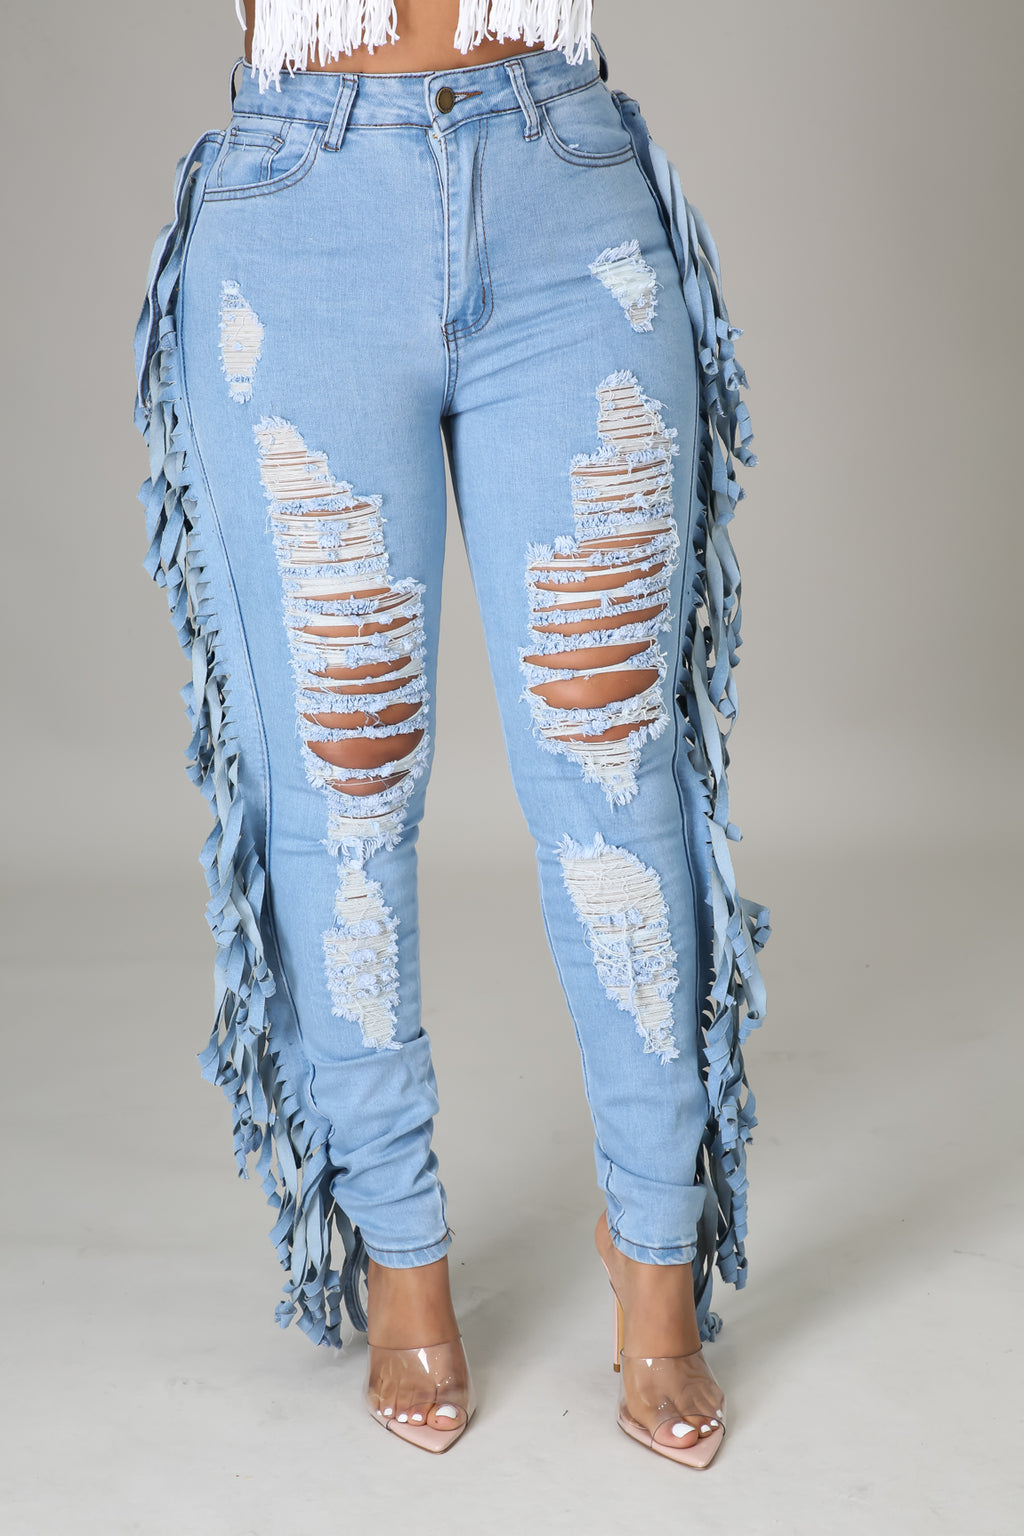 Fringe Benefits Jeans